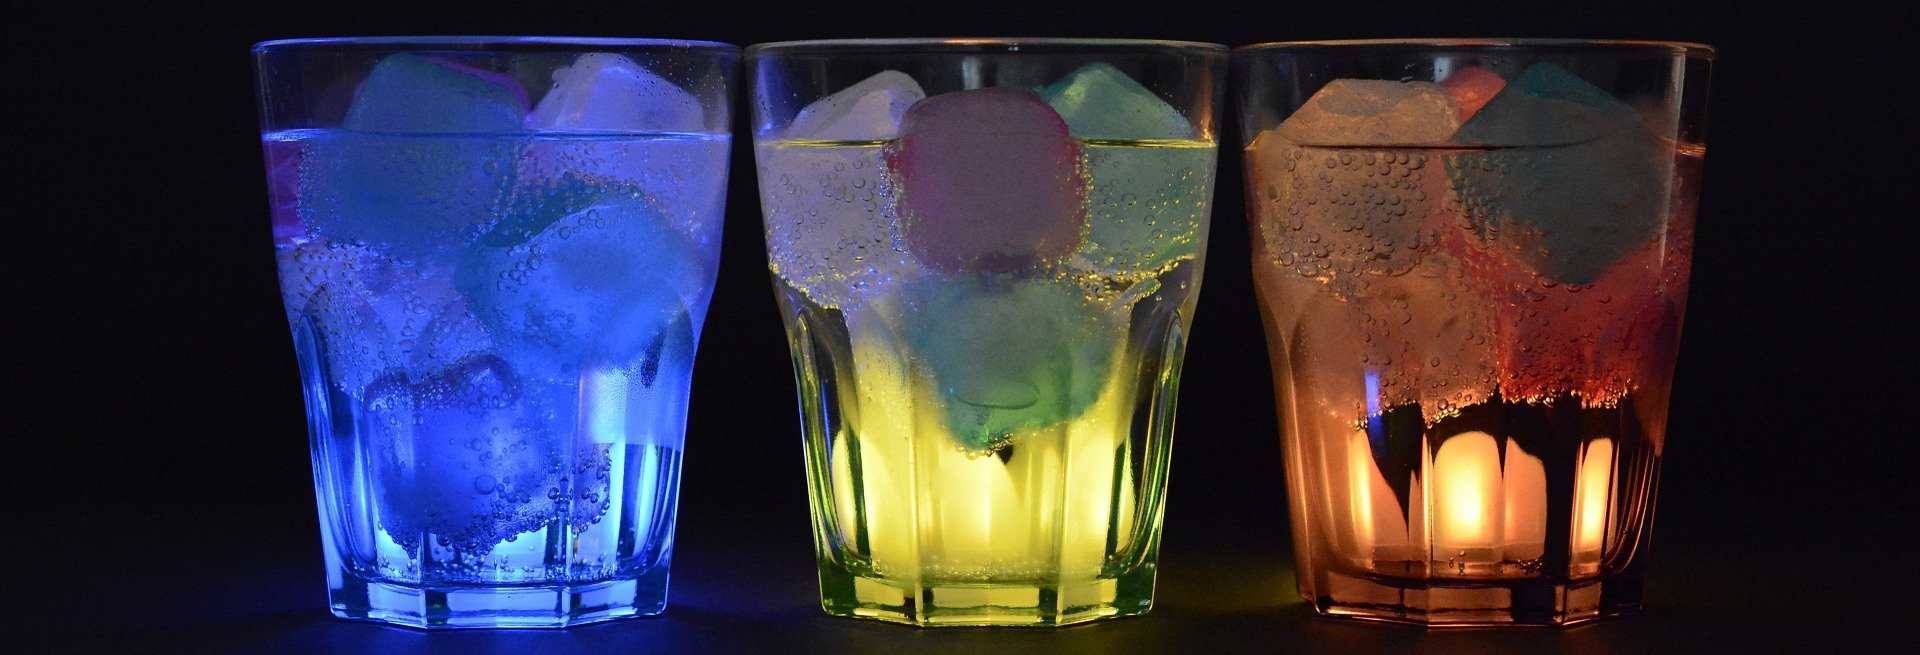 Three glasses with ice lit up in different colors.   Photo: Pixabay/anncapictures